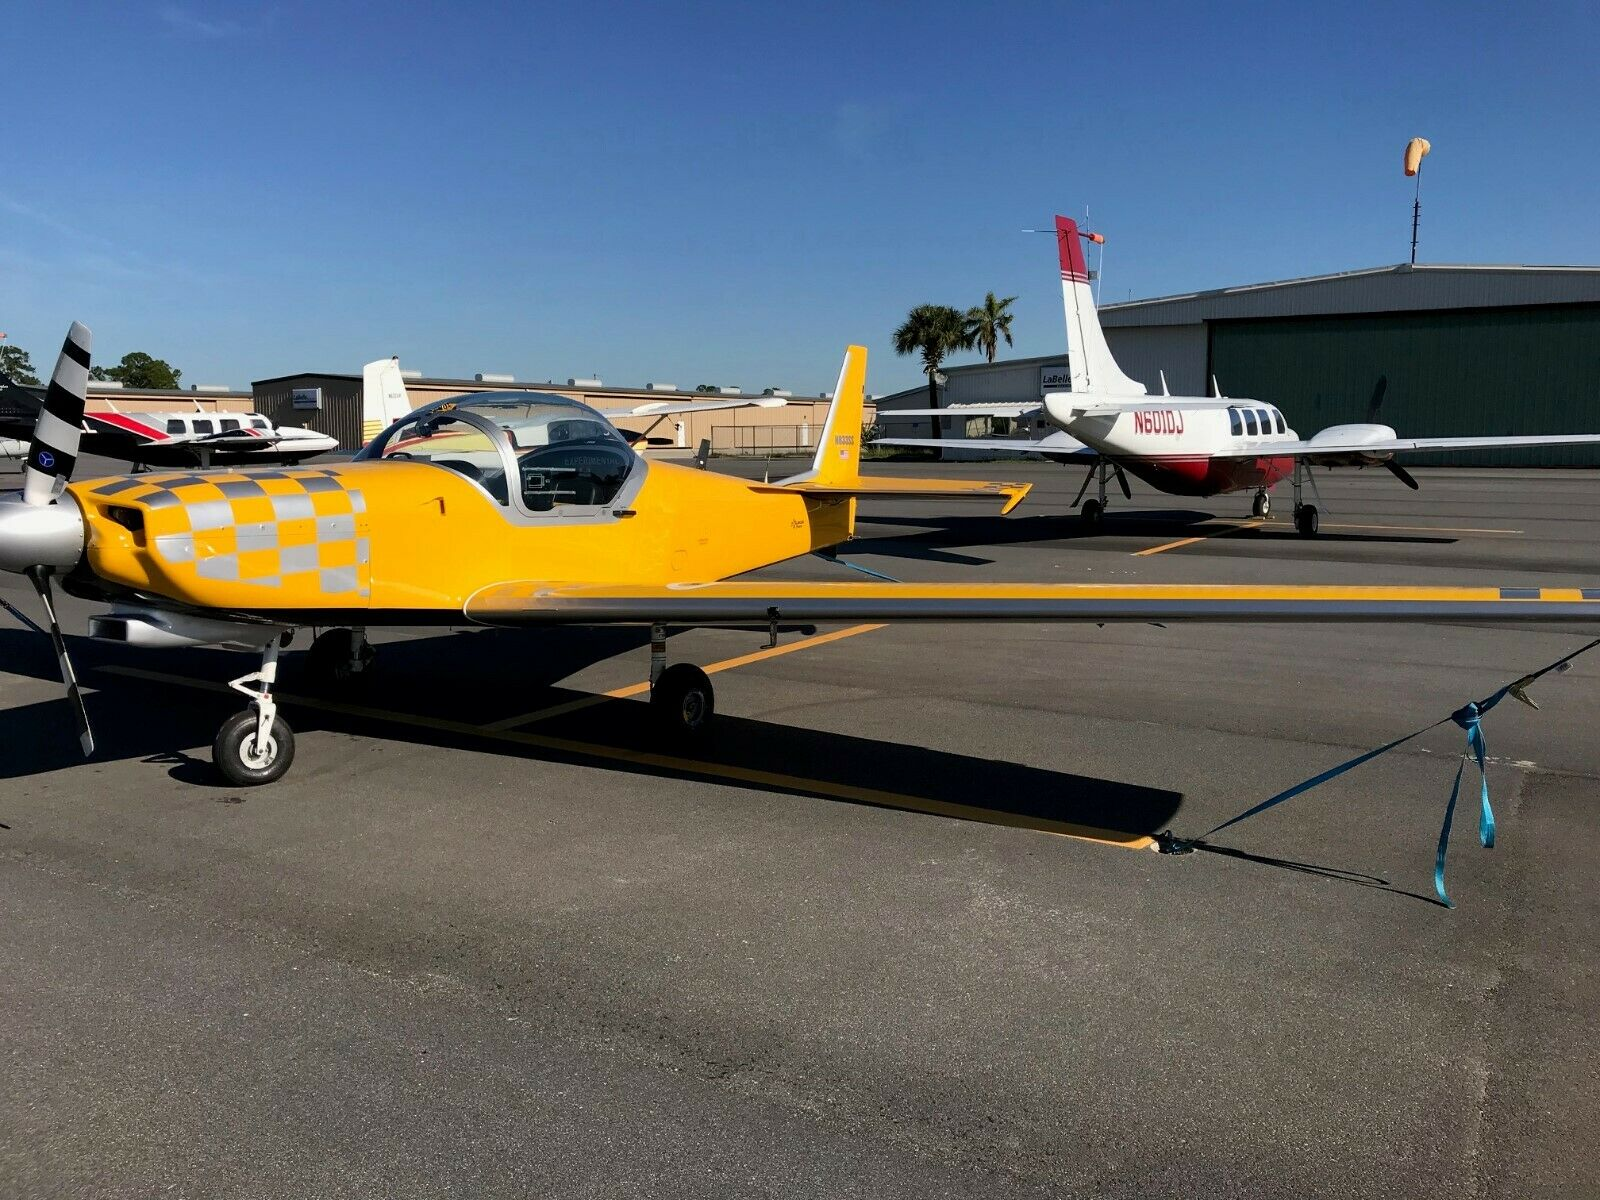 Aerobatic 1996 Slingsby Firefly Model T67 M260 aircraft for sale